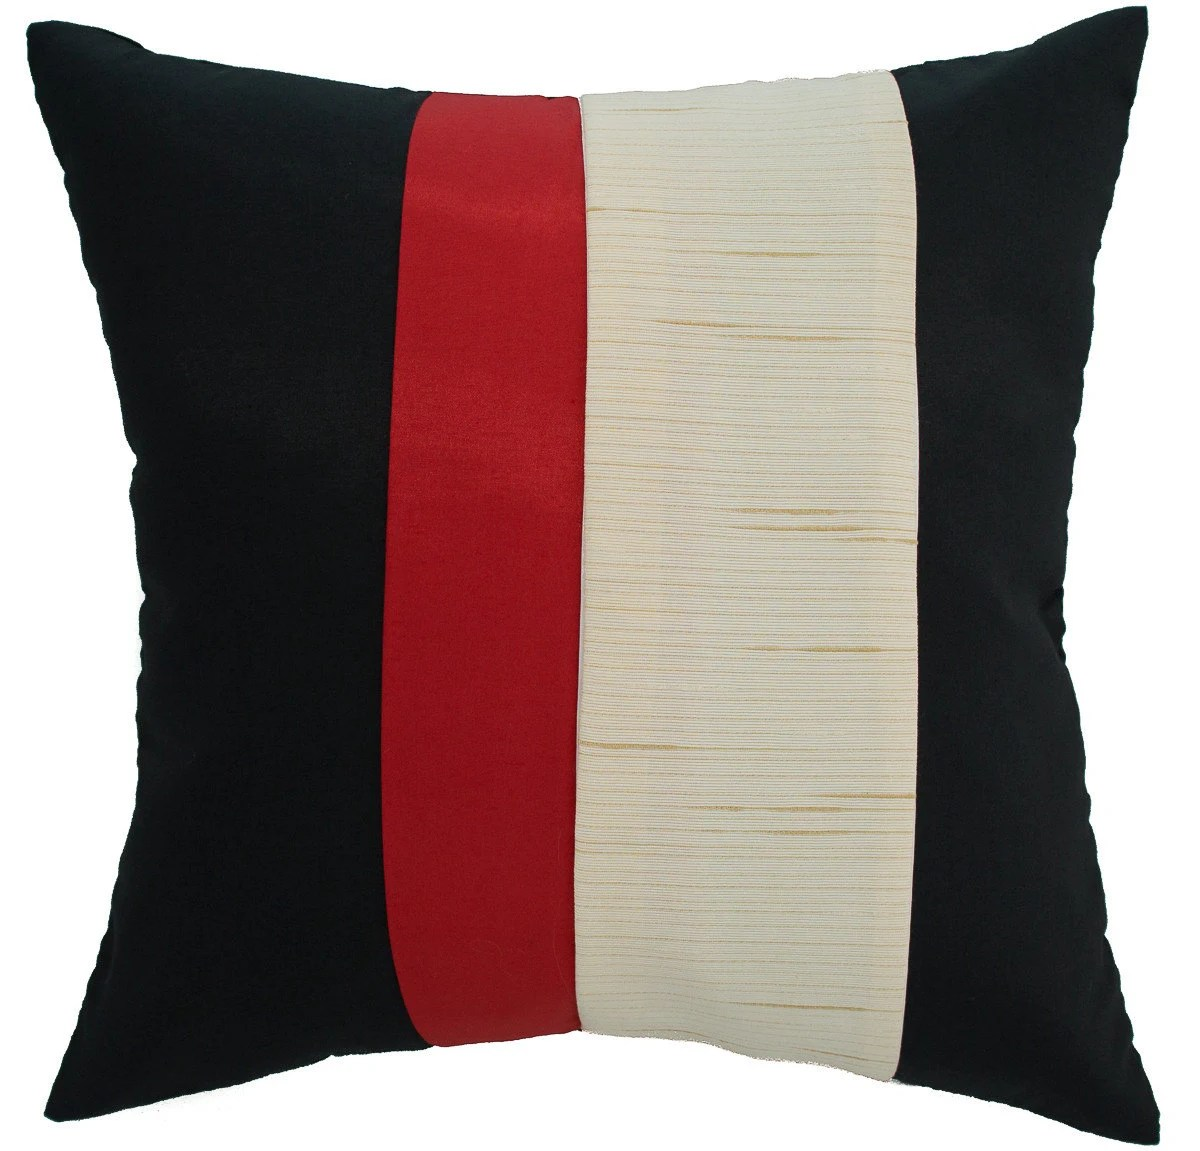 Avarada 16x16 Striped Rainbow Throw Pillow Cover By